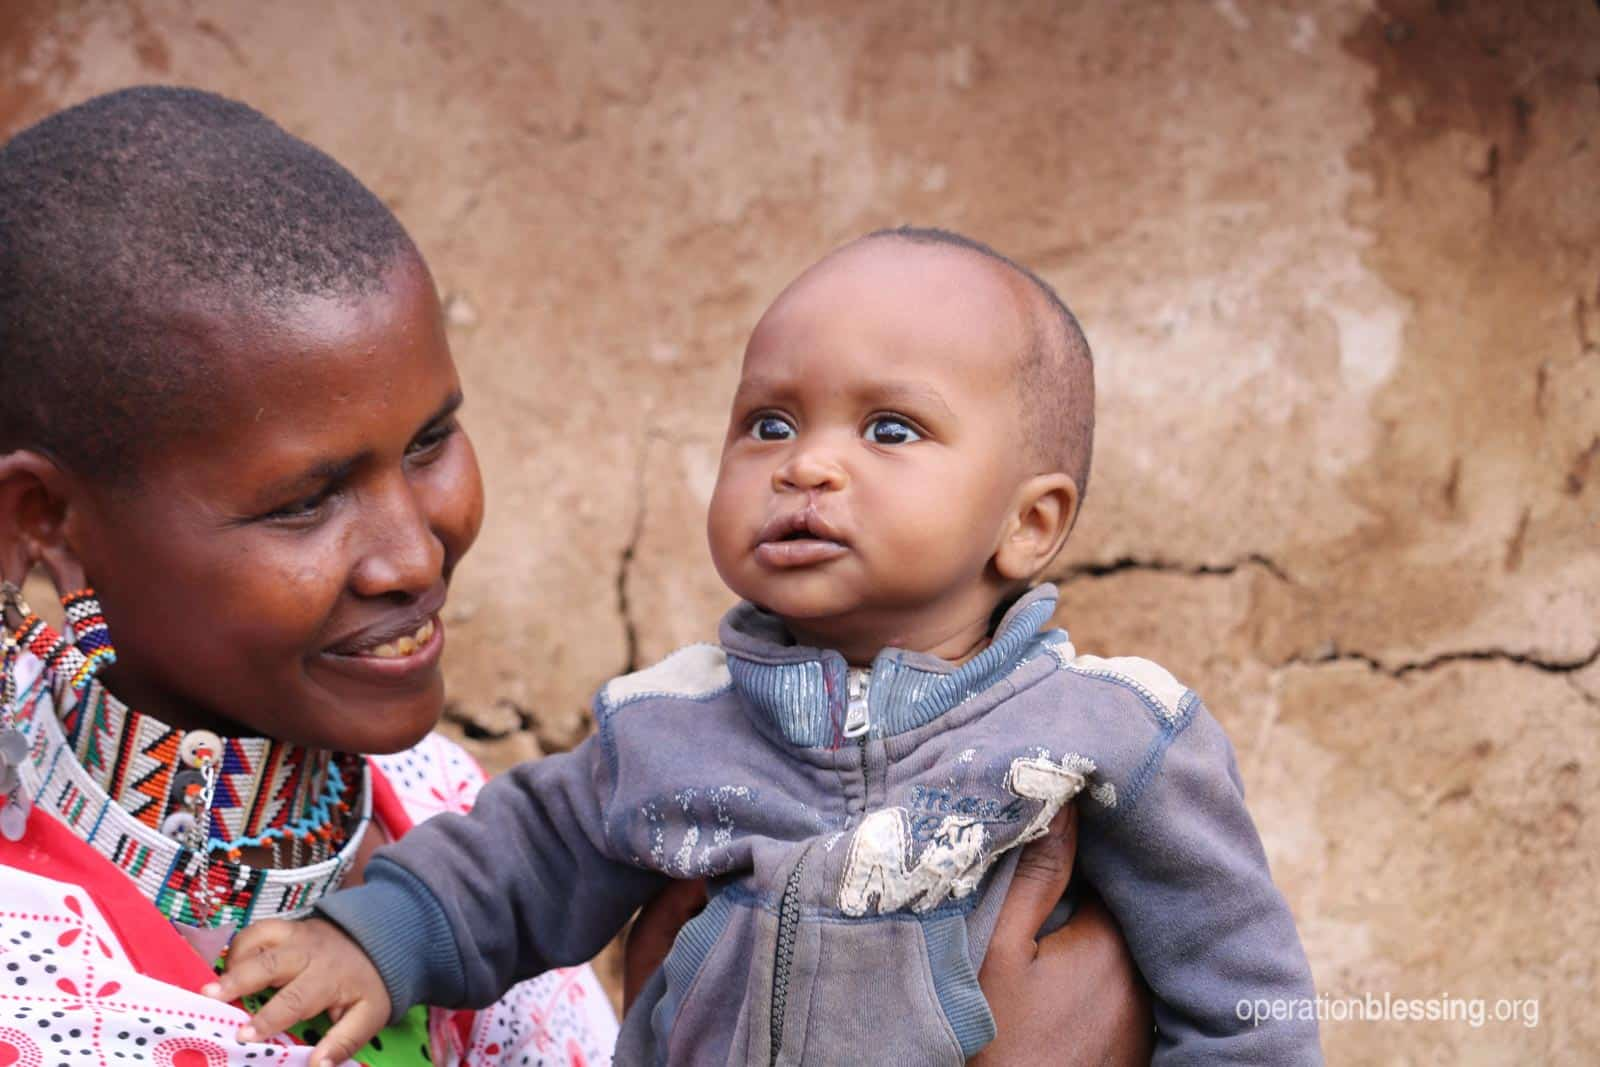 Isaac's mother proudly holds him for the camera after his surgery for cleft lip.